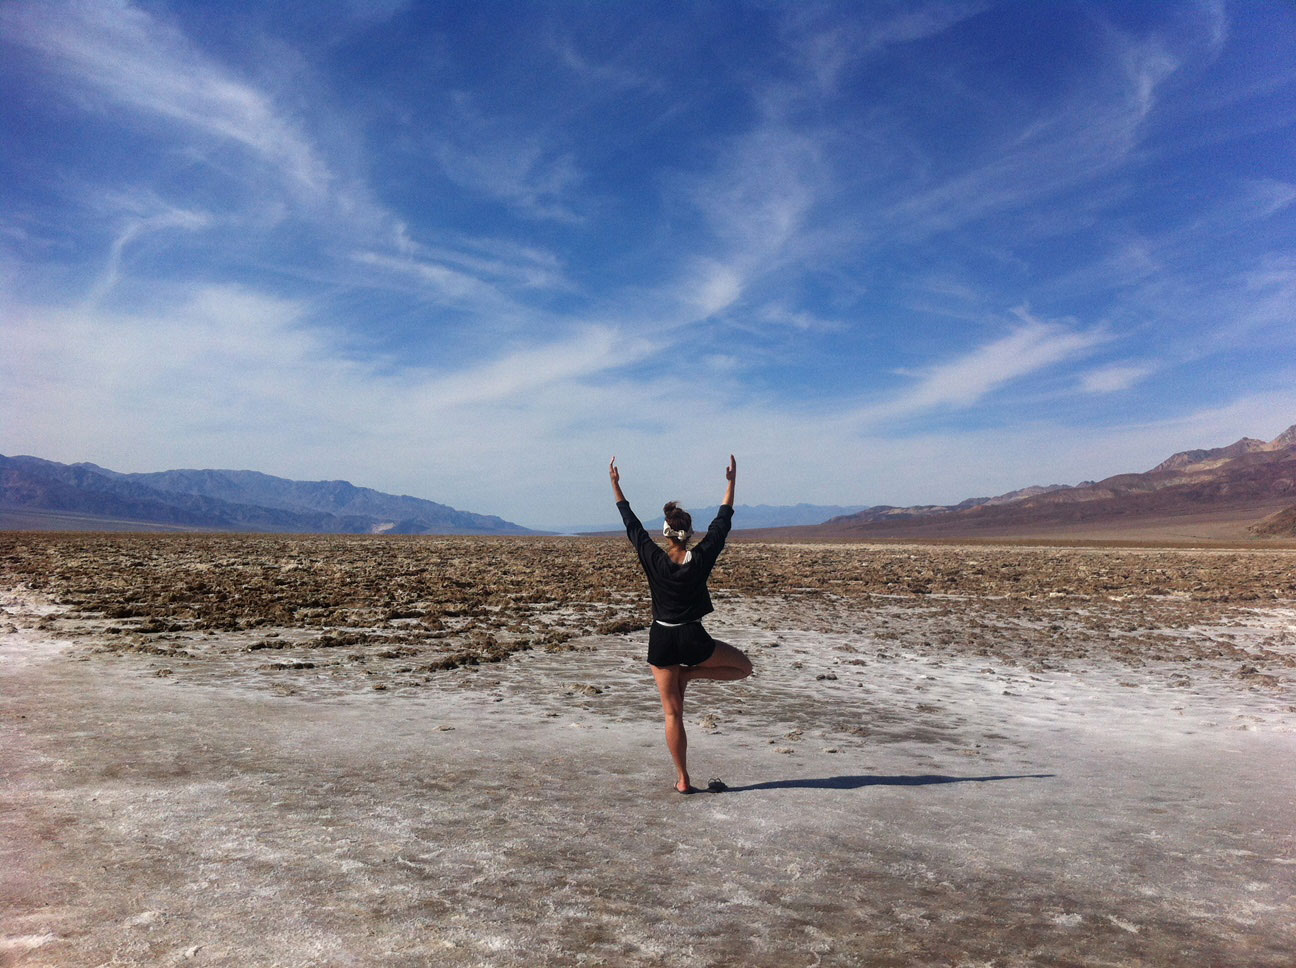 sandra-neumann-munichmountaingirls-Death-Valley-California